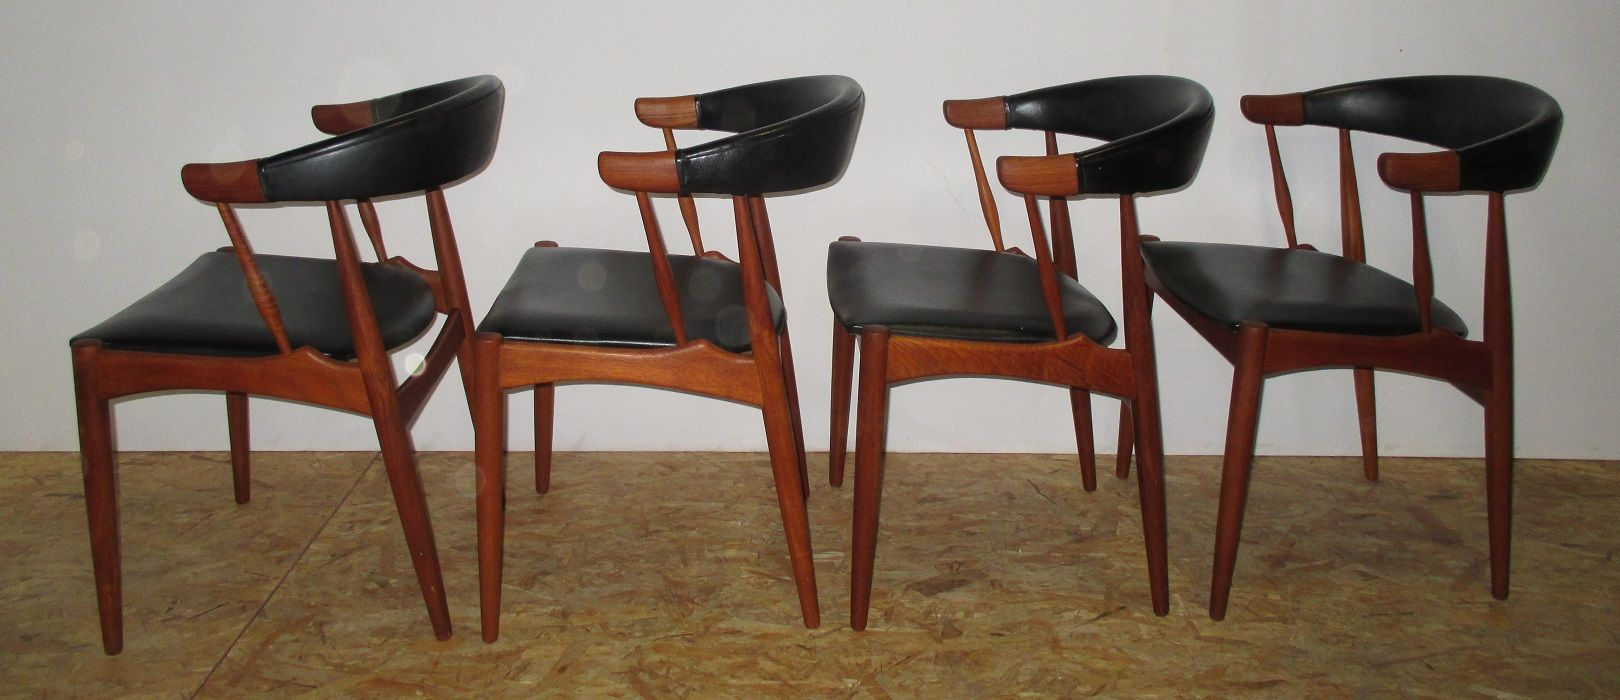 Danish Dining Chairs By Johannes Andersen For BRDR, 1964, Set Of 4